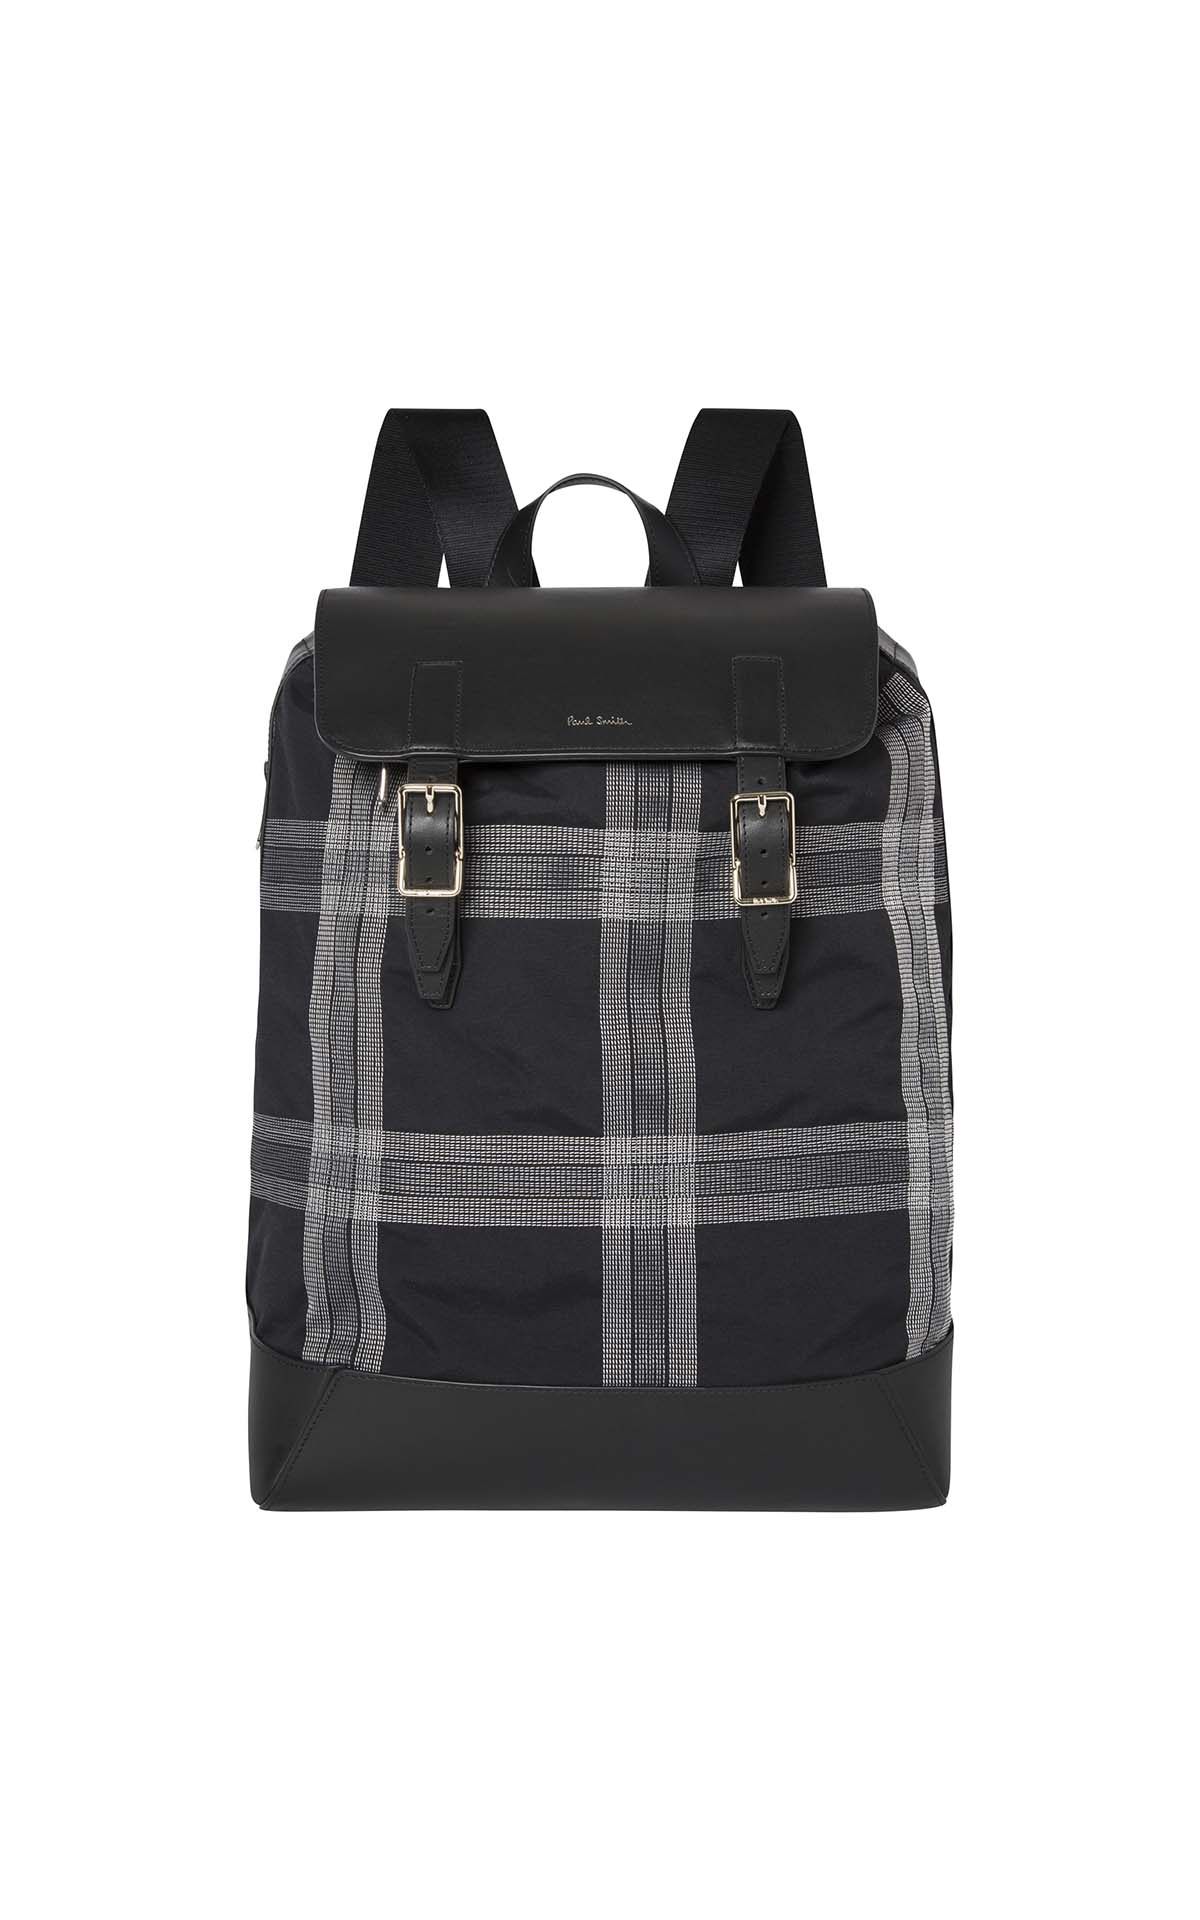 Paul Smith Men's Checked Black Rucksack at The Bicester Village Shopping Collection